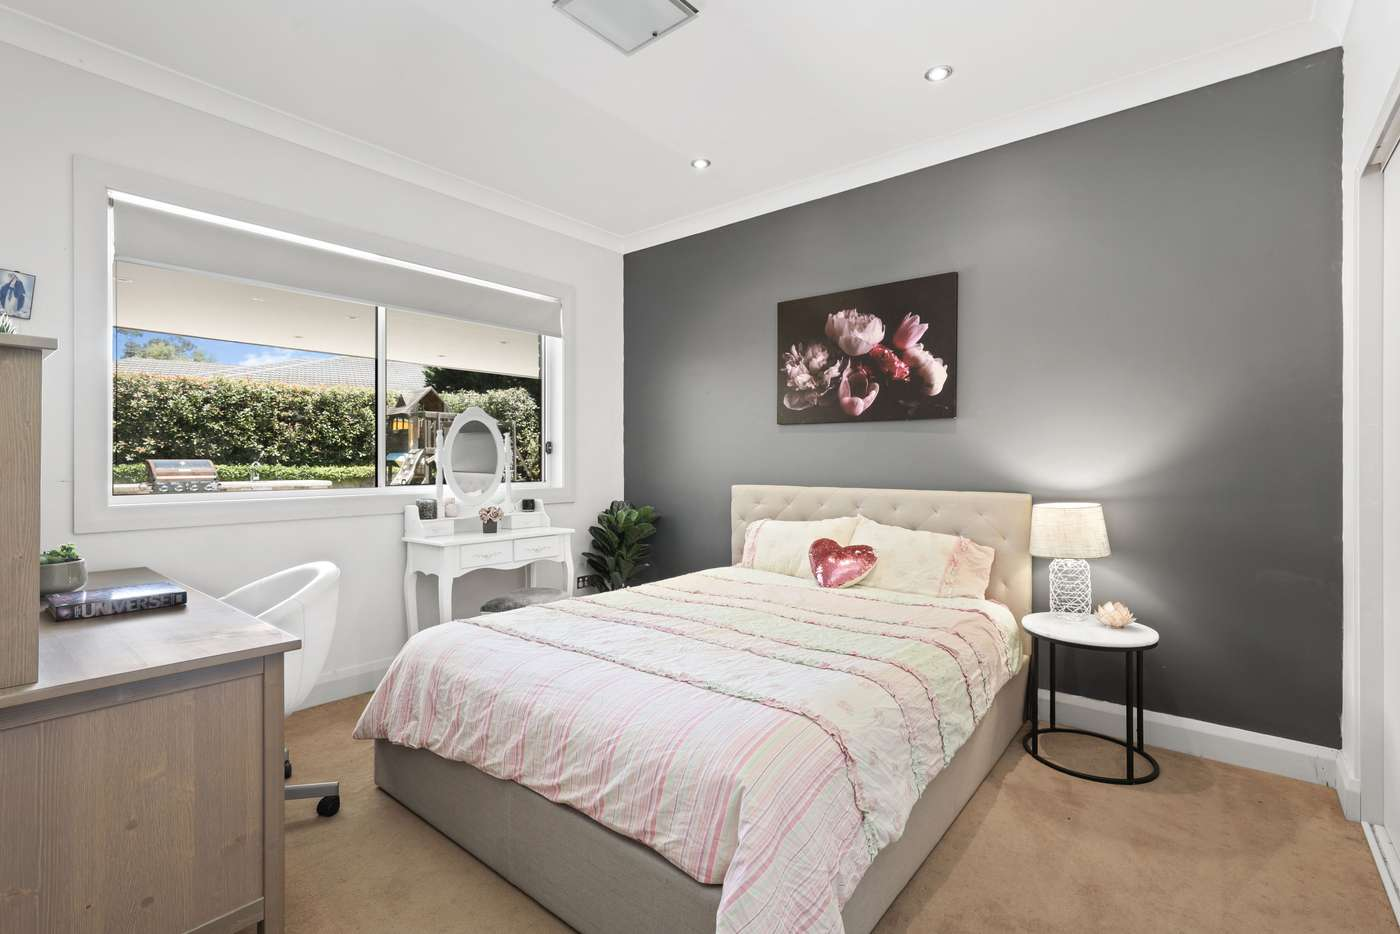 Sixth view of Homely house listing, 13 St Judes Terrace, Dural NSW 2158